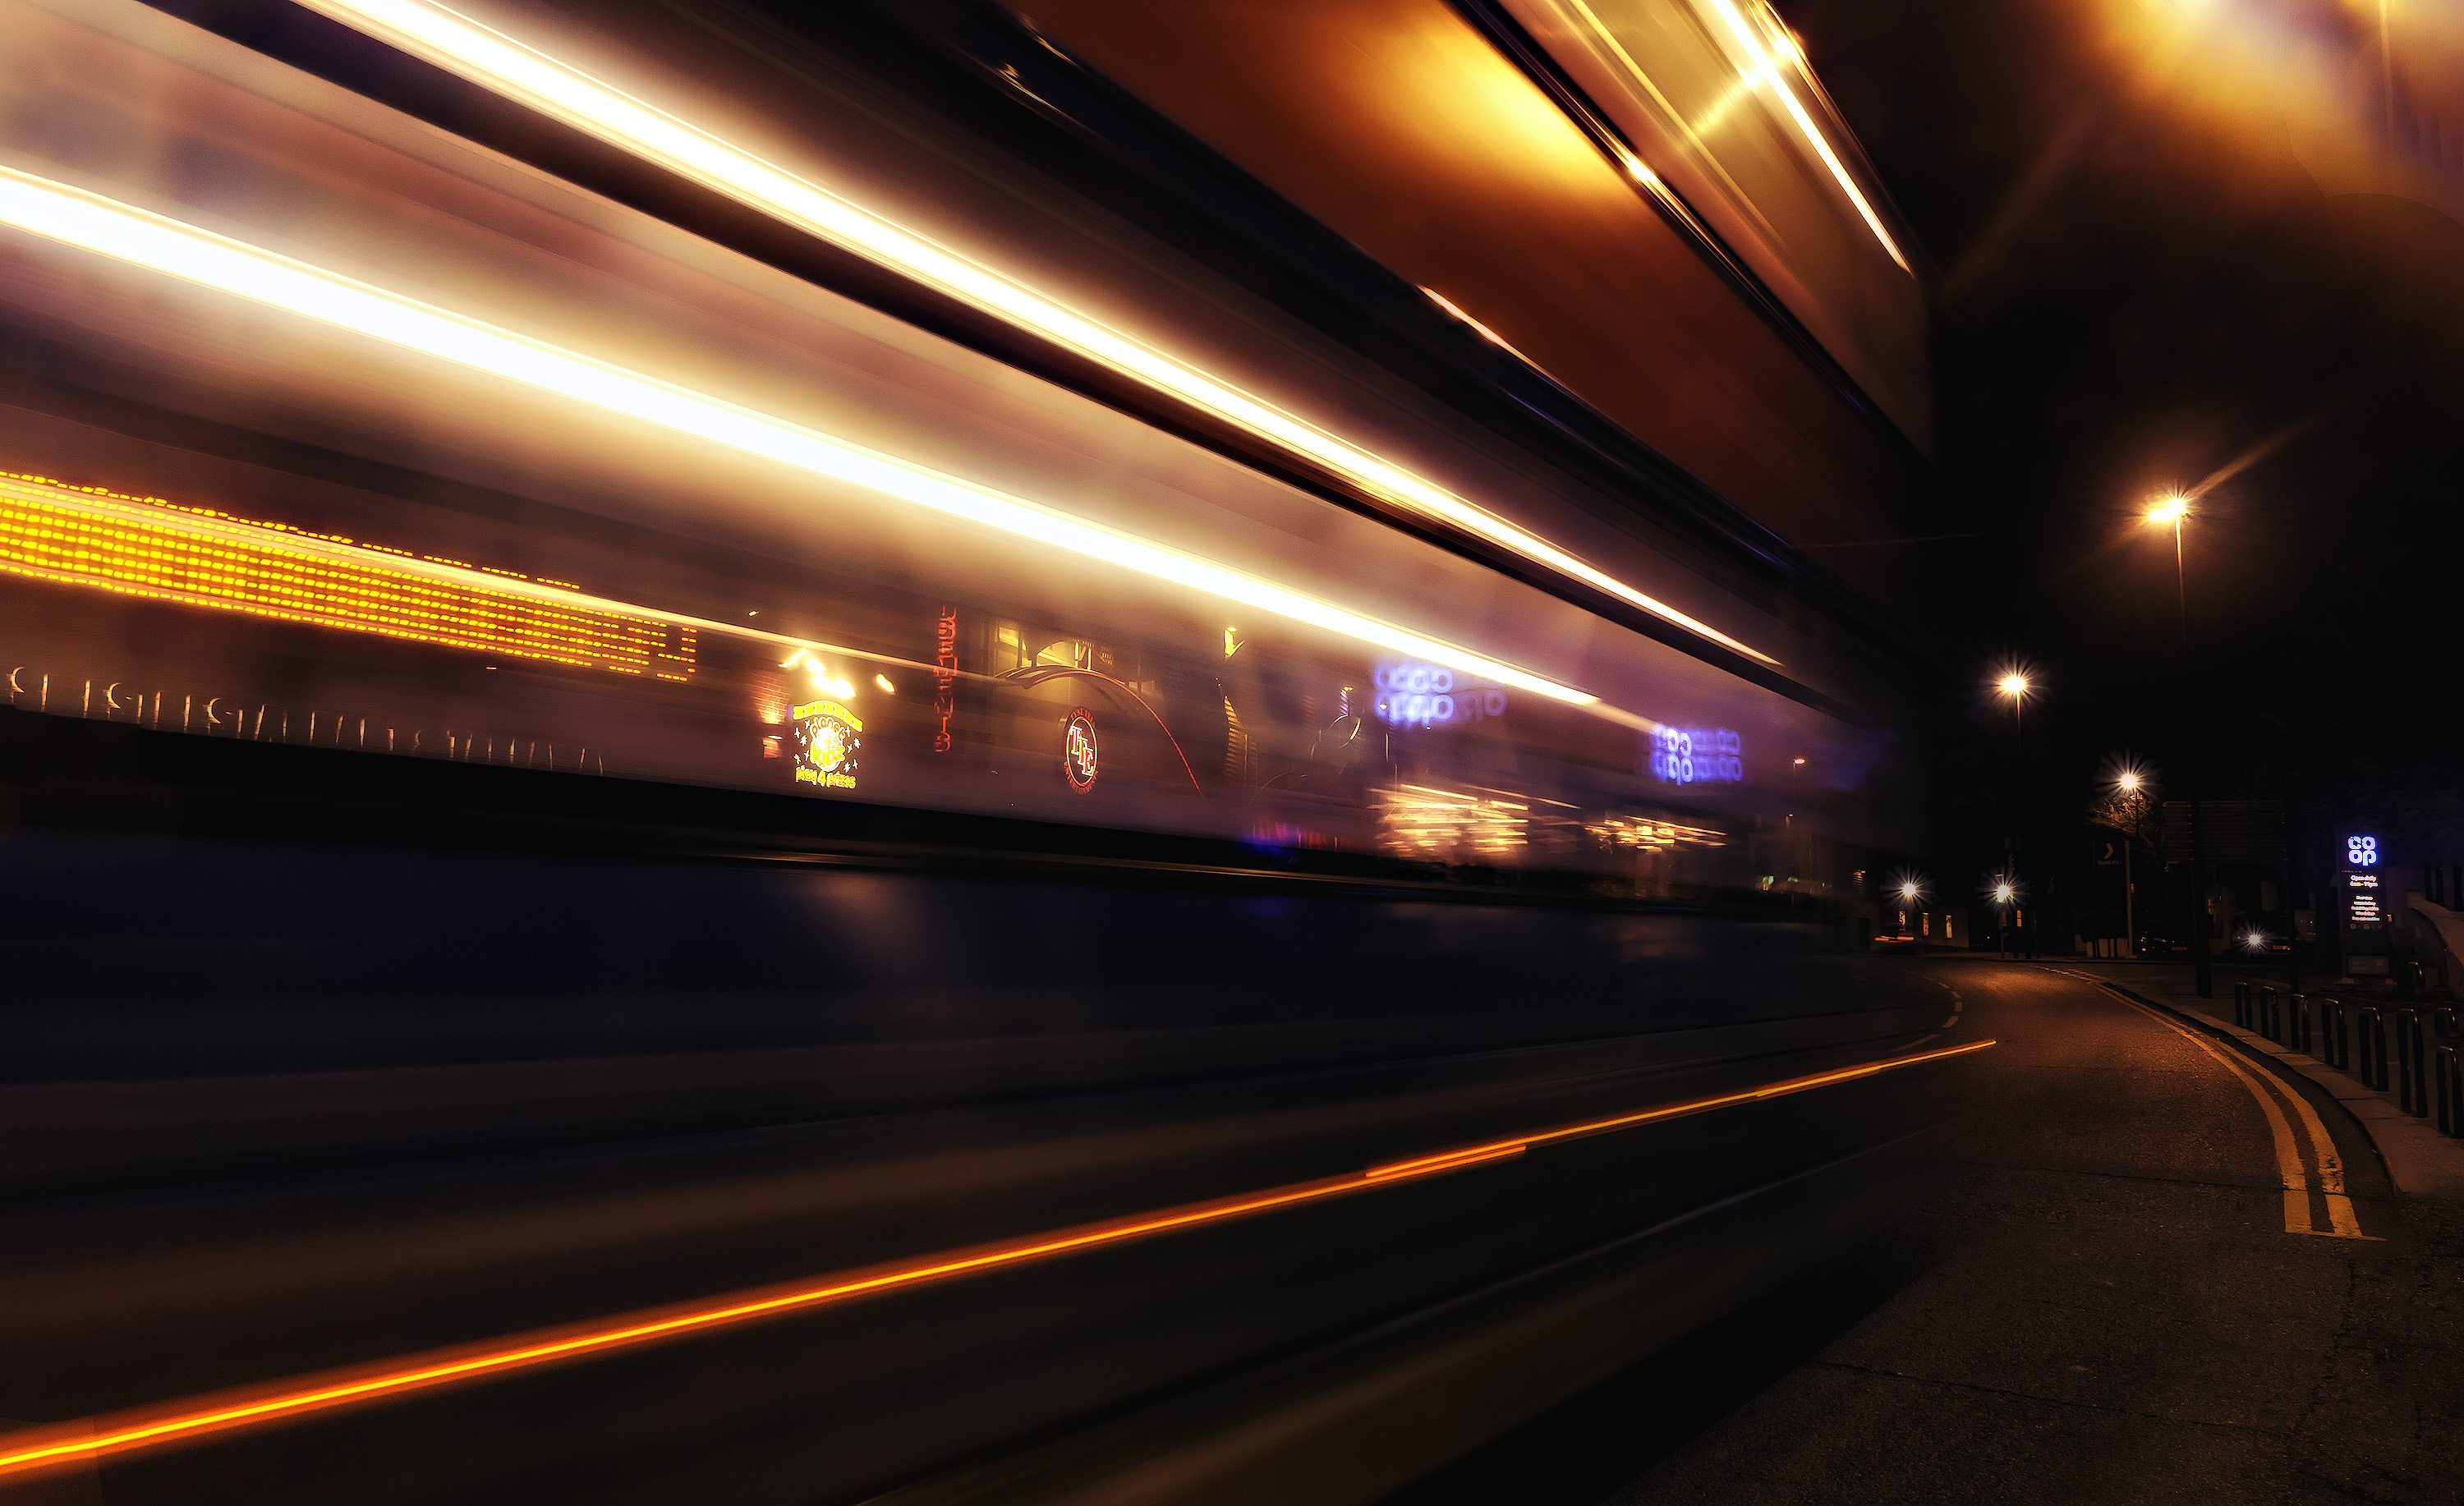 Time Lapsed Photography of Vehicles on Road